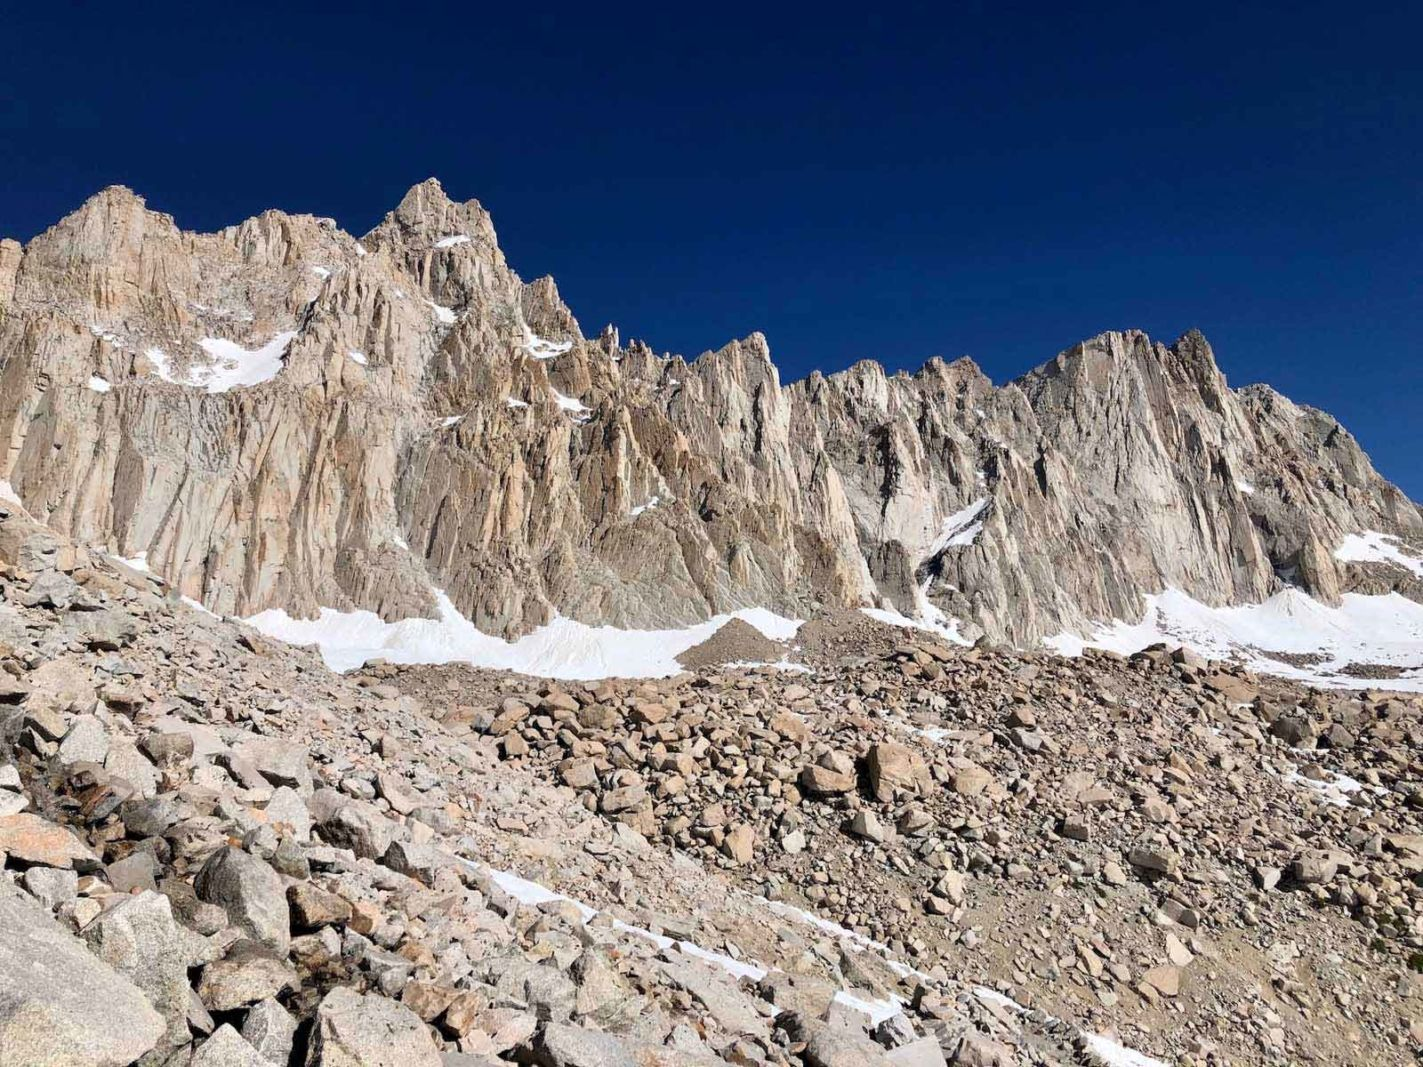 view of jagged peaks on mount whitney